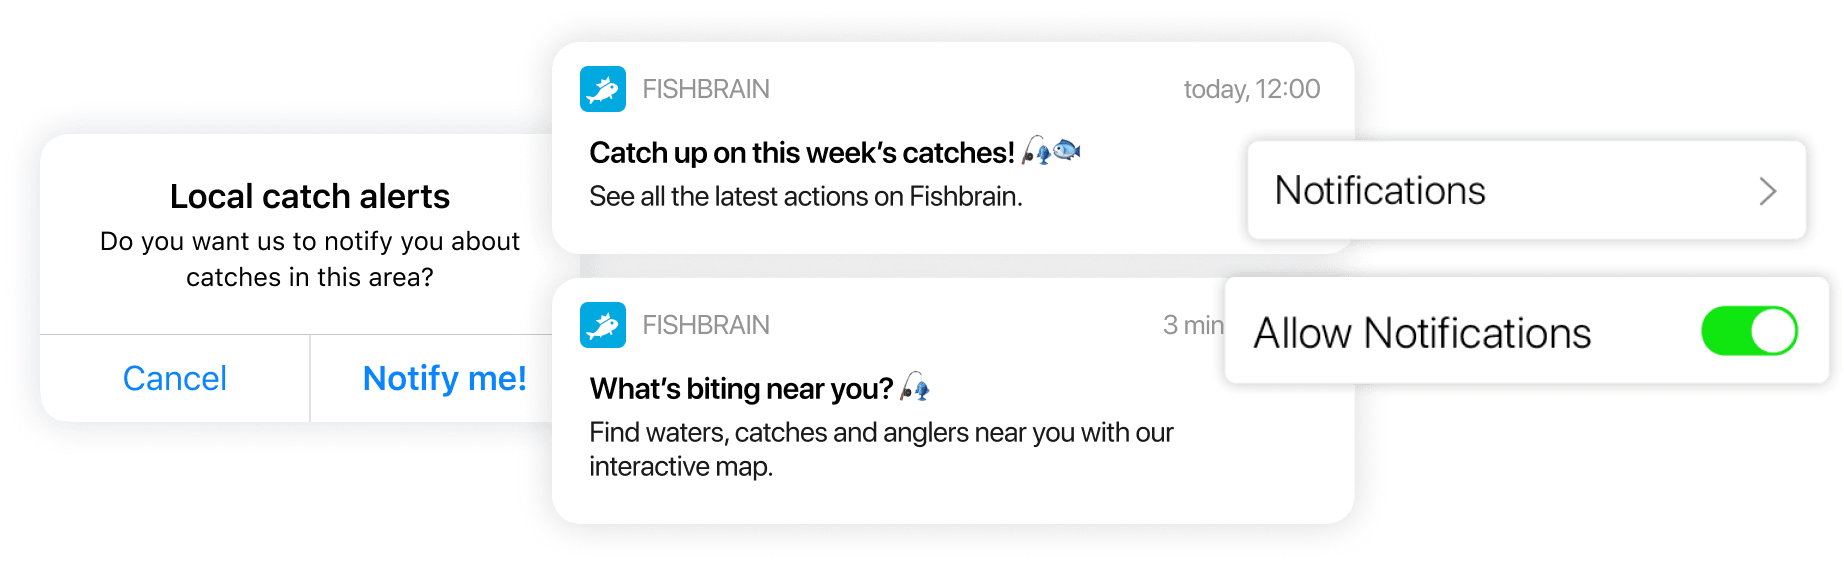 fishbrain case study